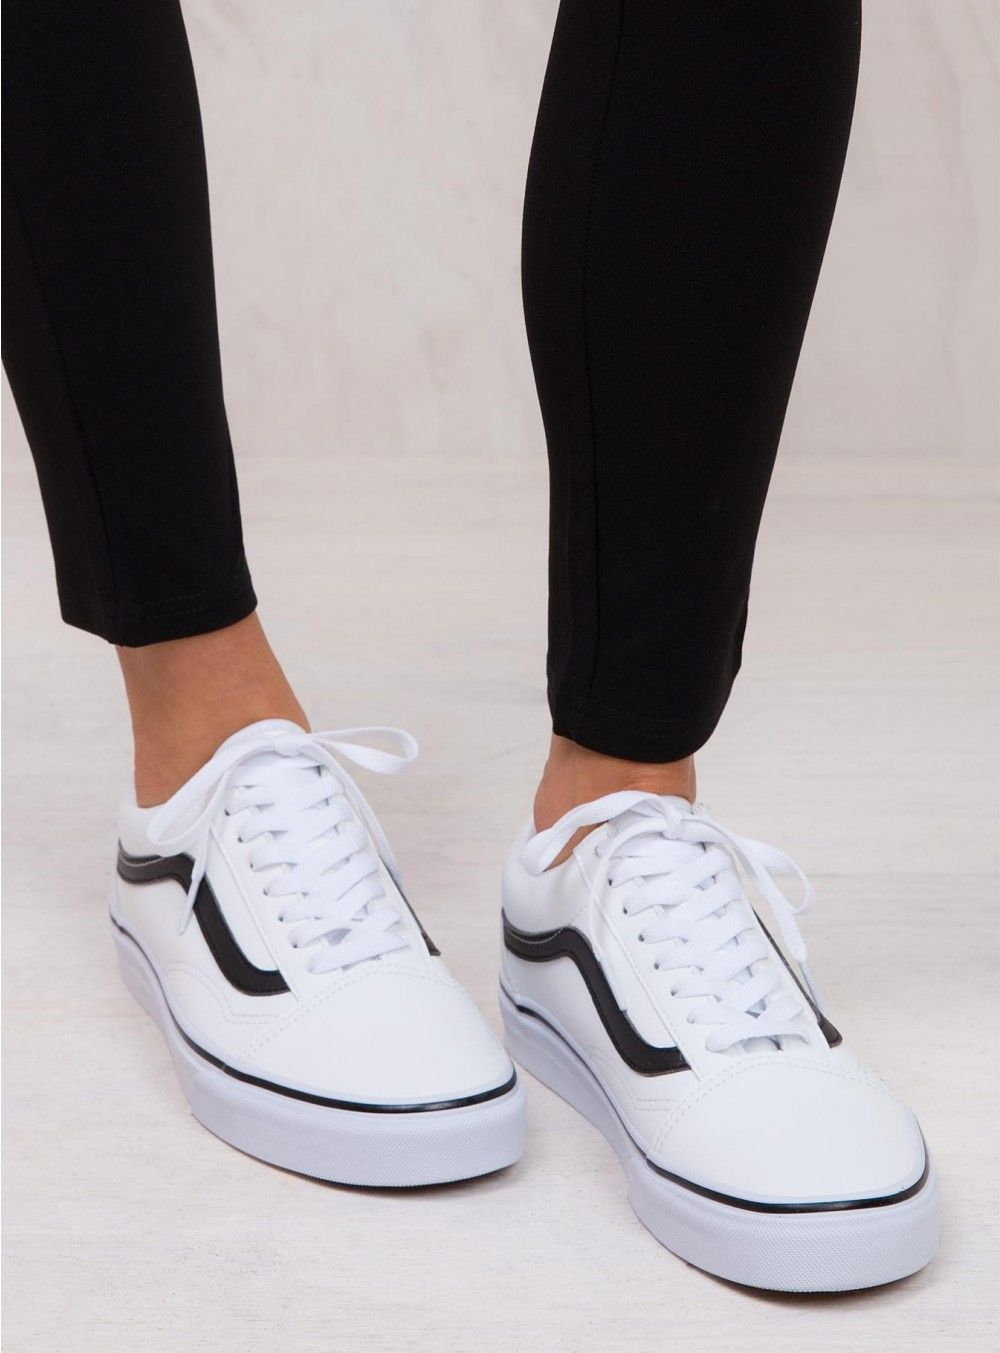 Vans Classic Tumble White Old Skool | Vans shoes outfit